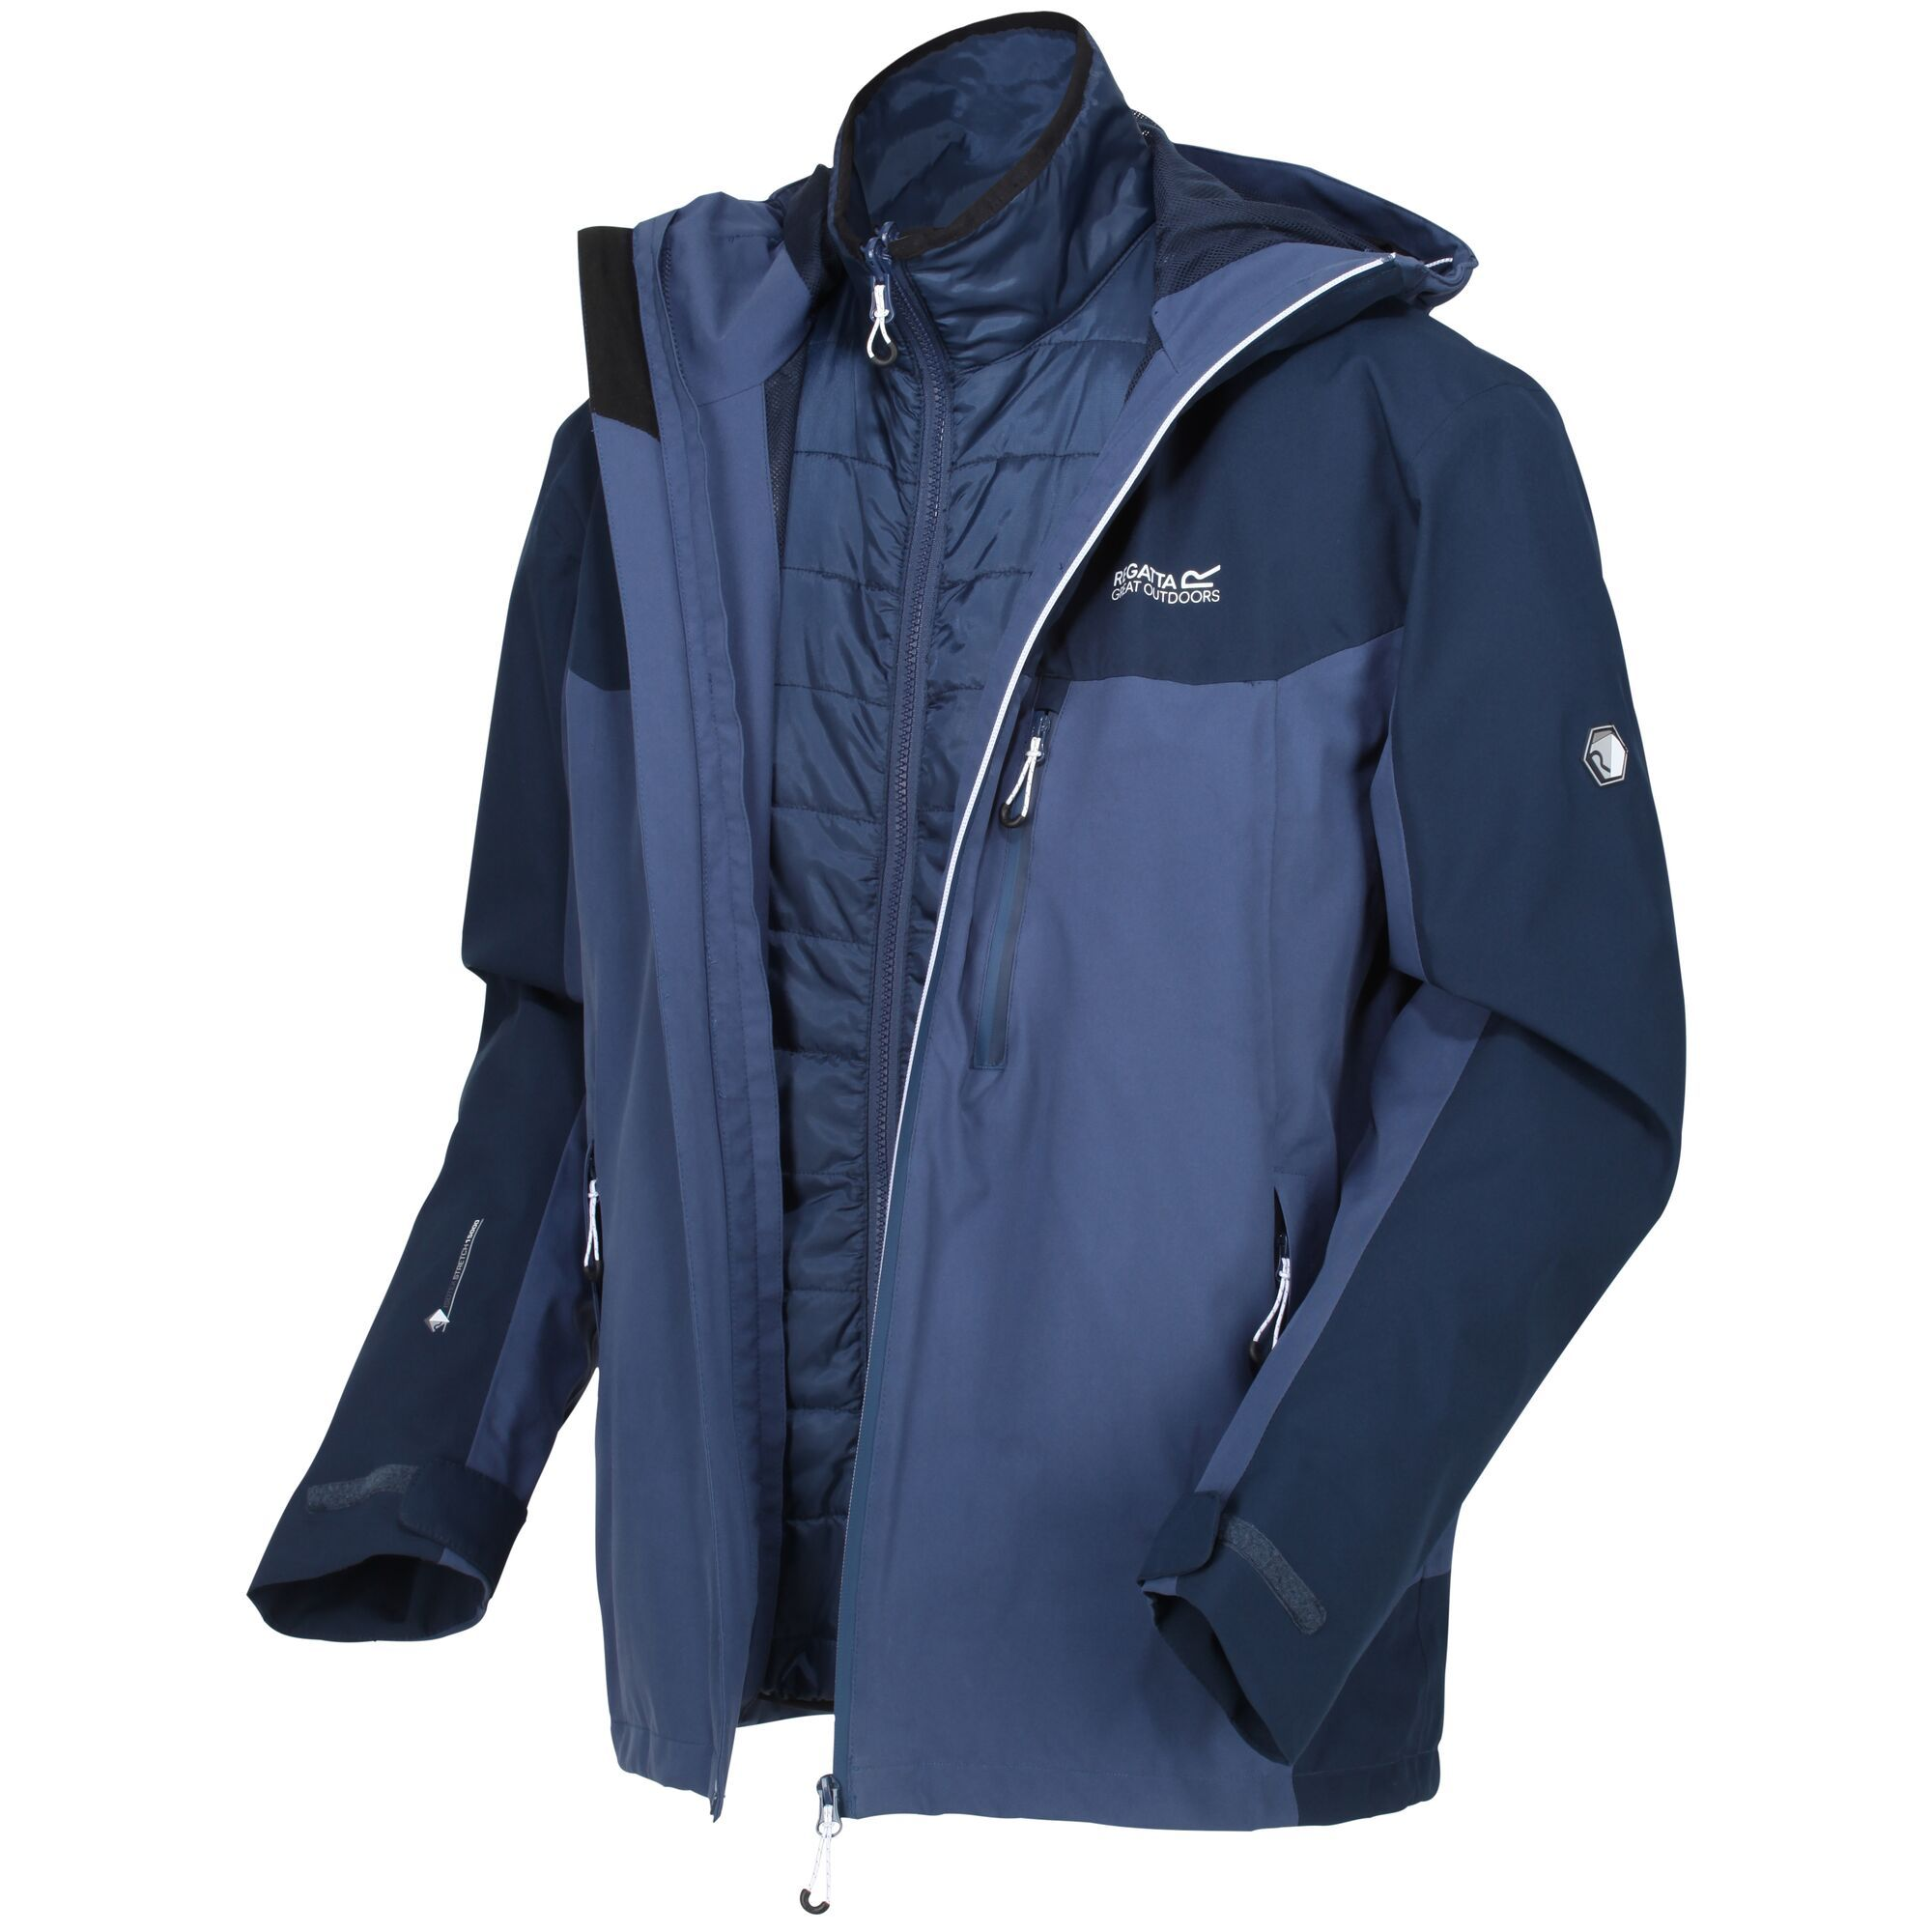 Men's 3 in 1 waterproof jacket